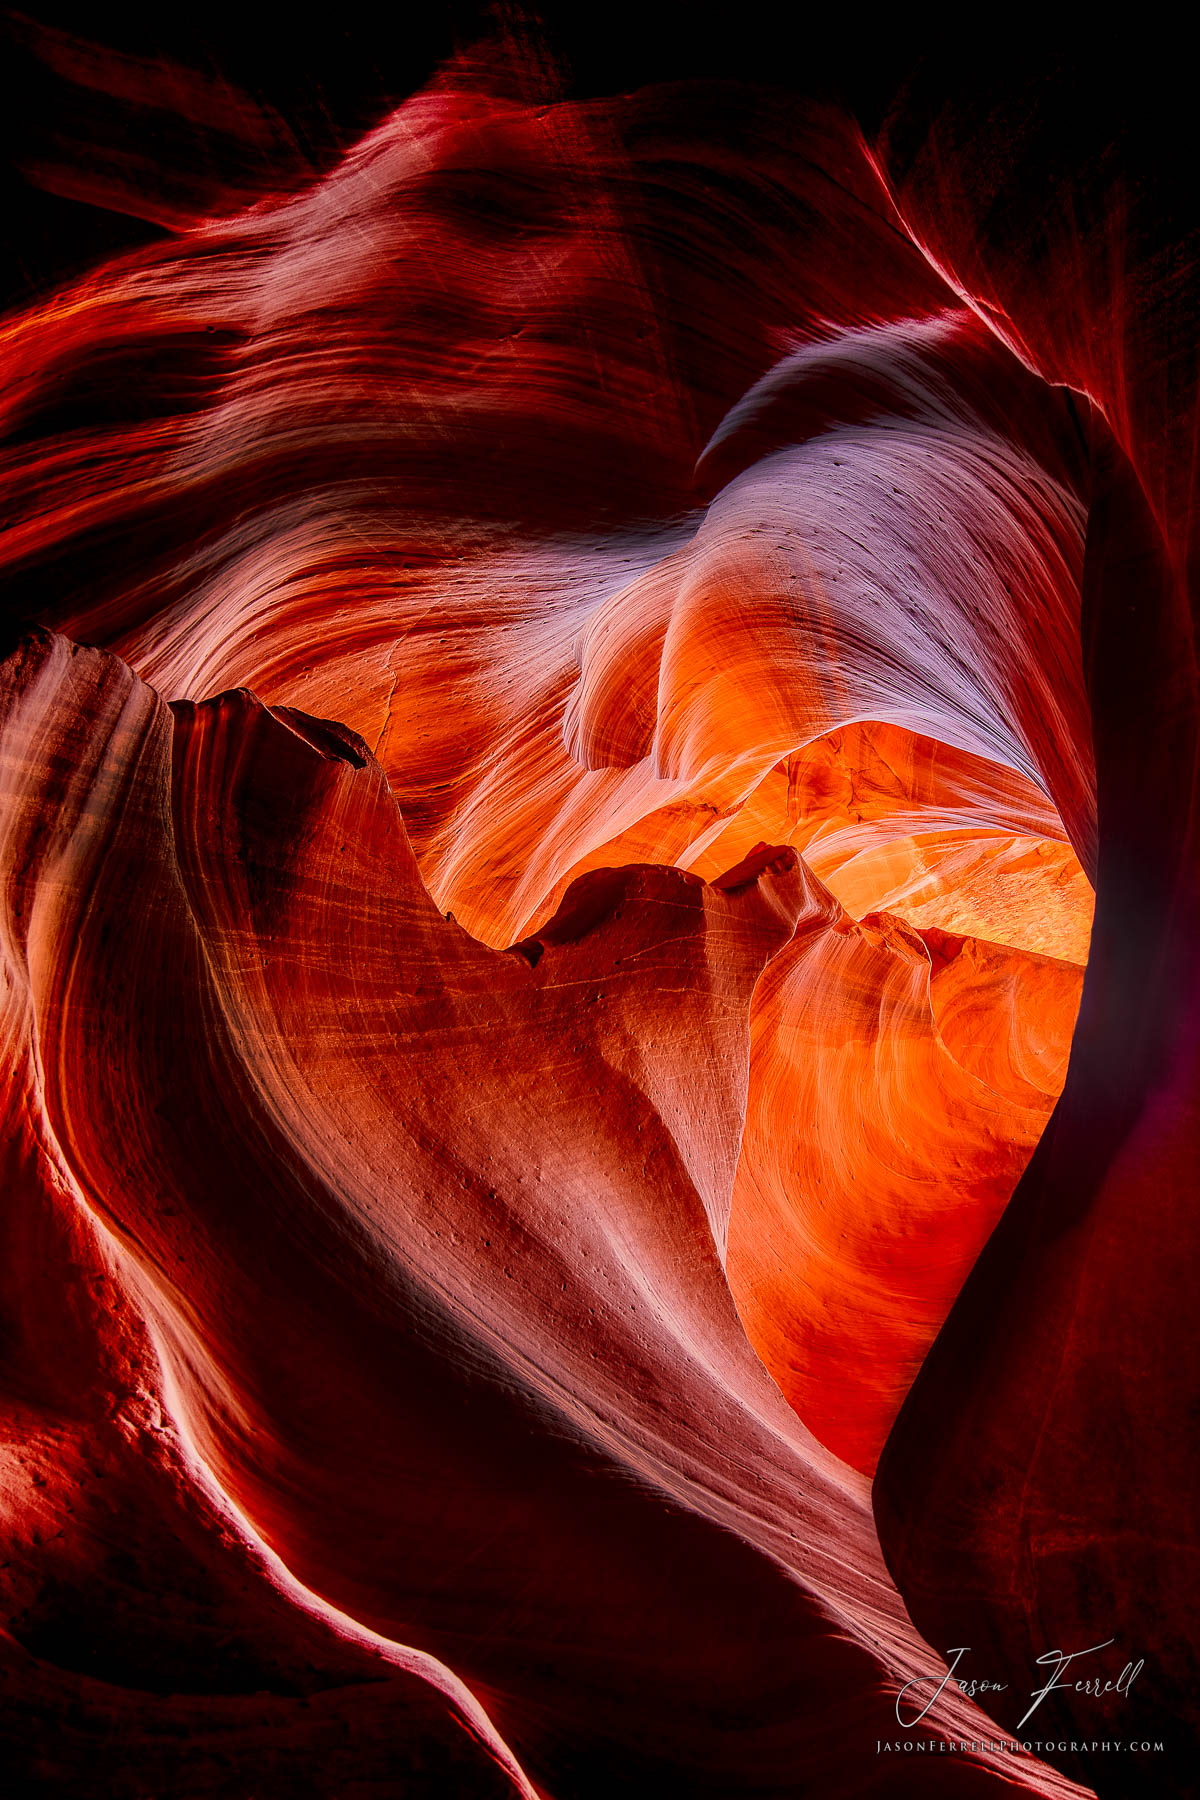 amarantine, antelope canyon, peter like, ghost, sandstone, rock, erosion, light, shadow, sun, light, heart, shape, photo